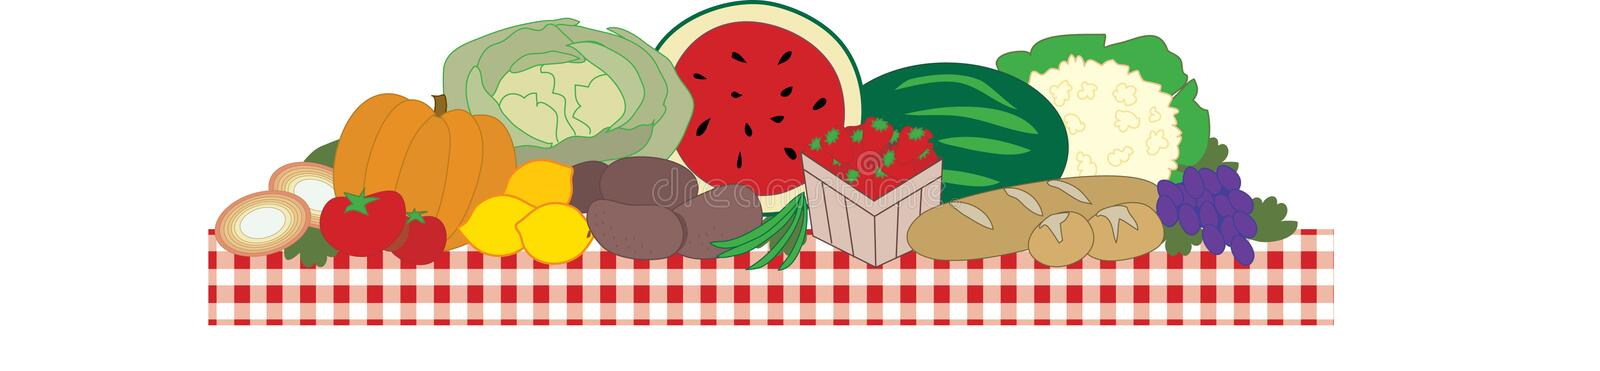 The feast. A picnic Table full of fruit and vegetables vector illustration